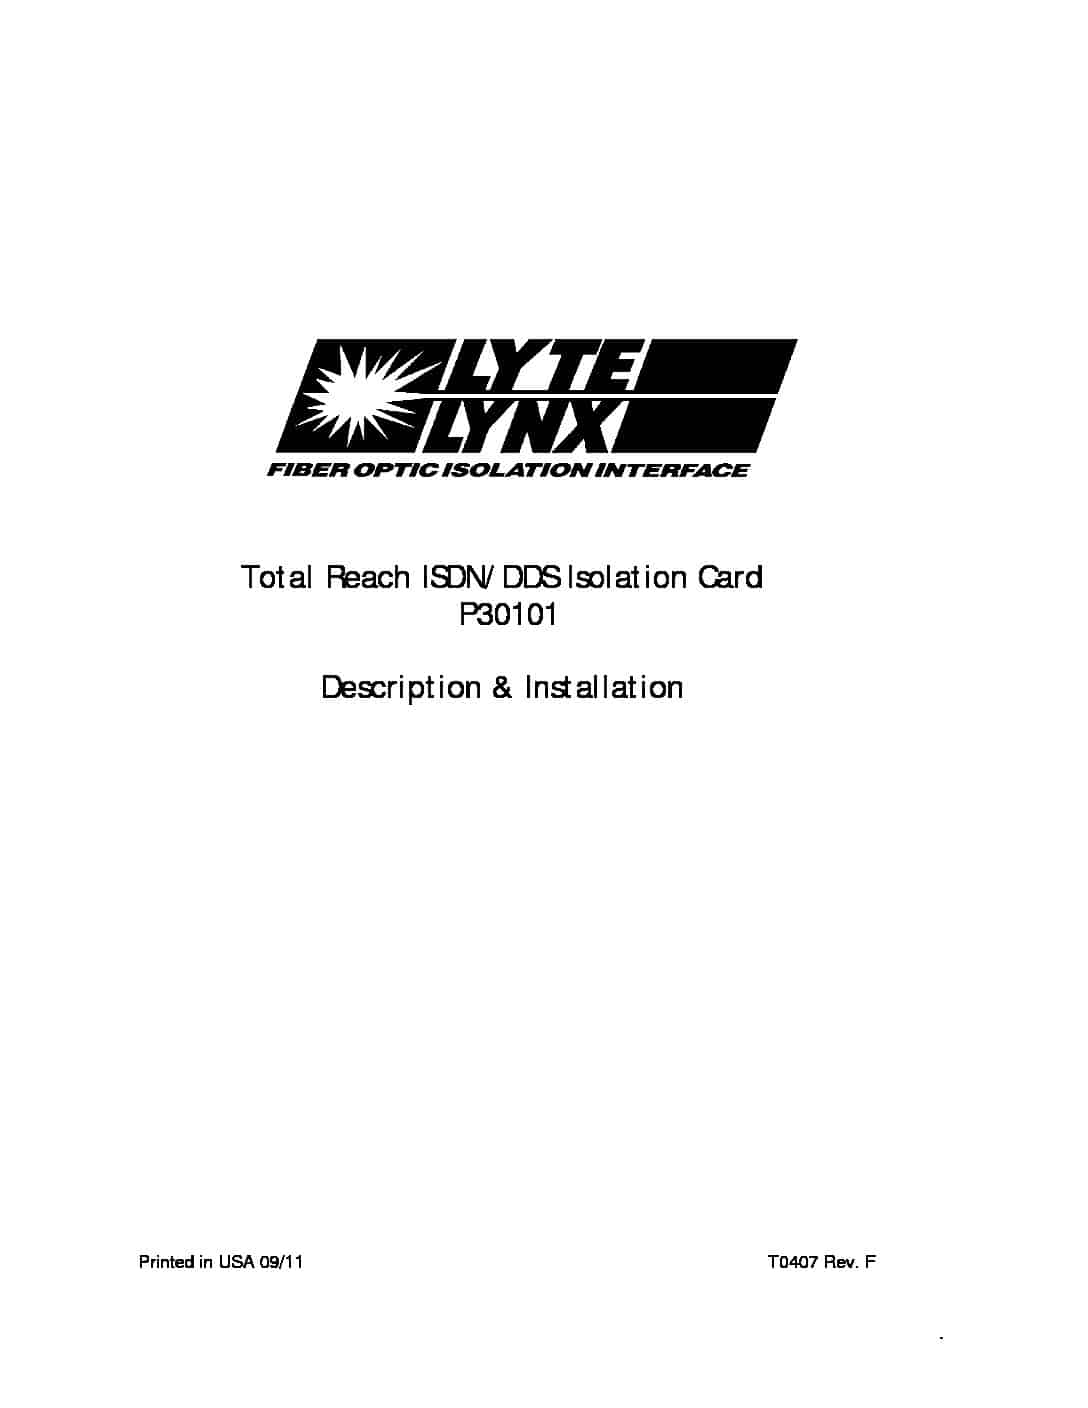 P30101 Total Reach ISDN/DDS Isolation Card PDF thumbnail